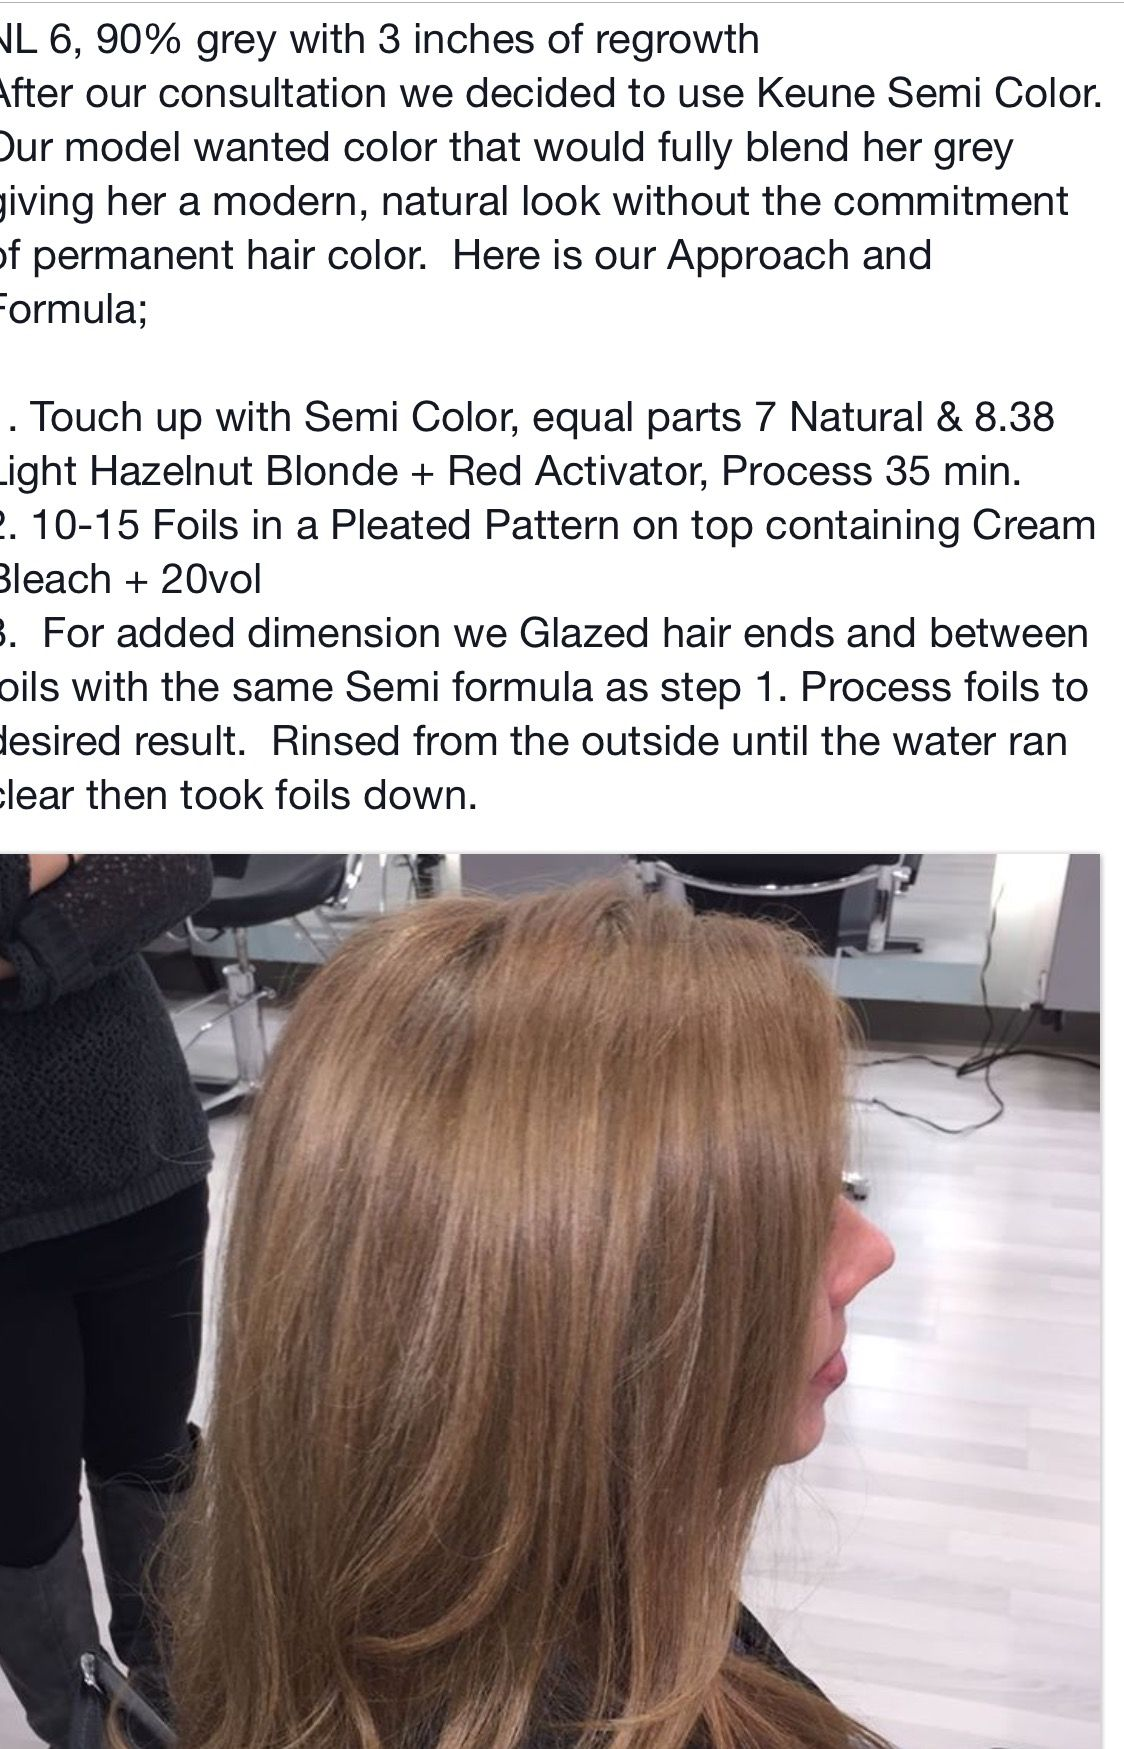 Pin By George Alderete On Hair Color Formulas Step By Step How To Hair Color Formulas Hair Color Long Hair Styles